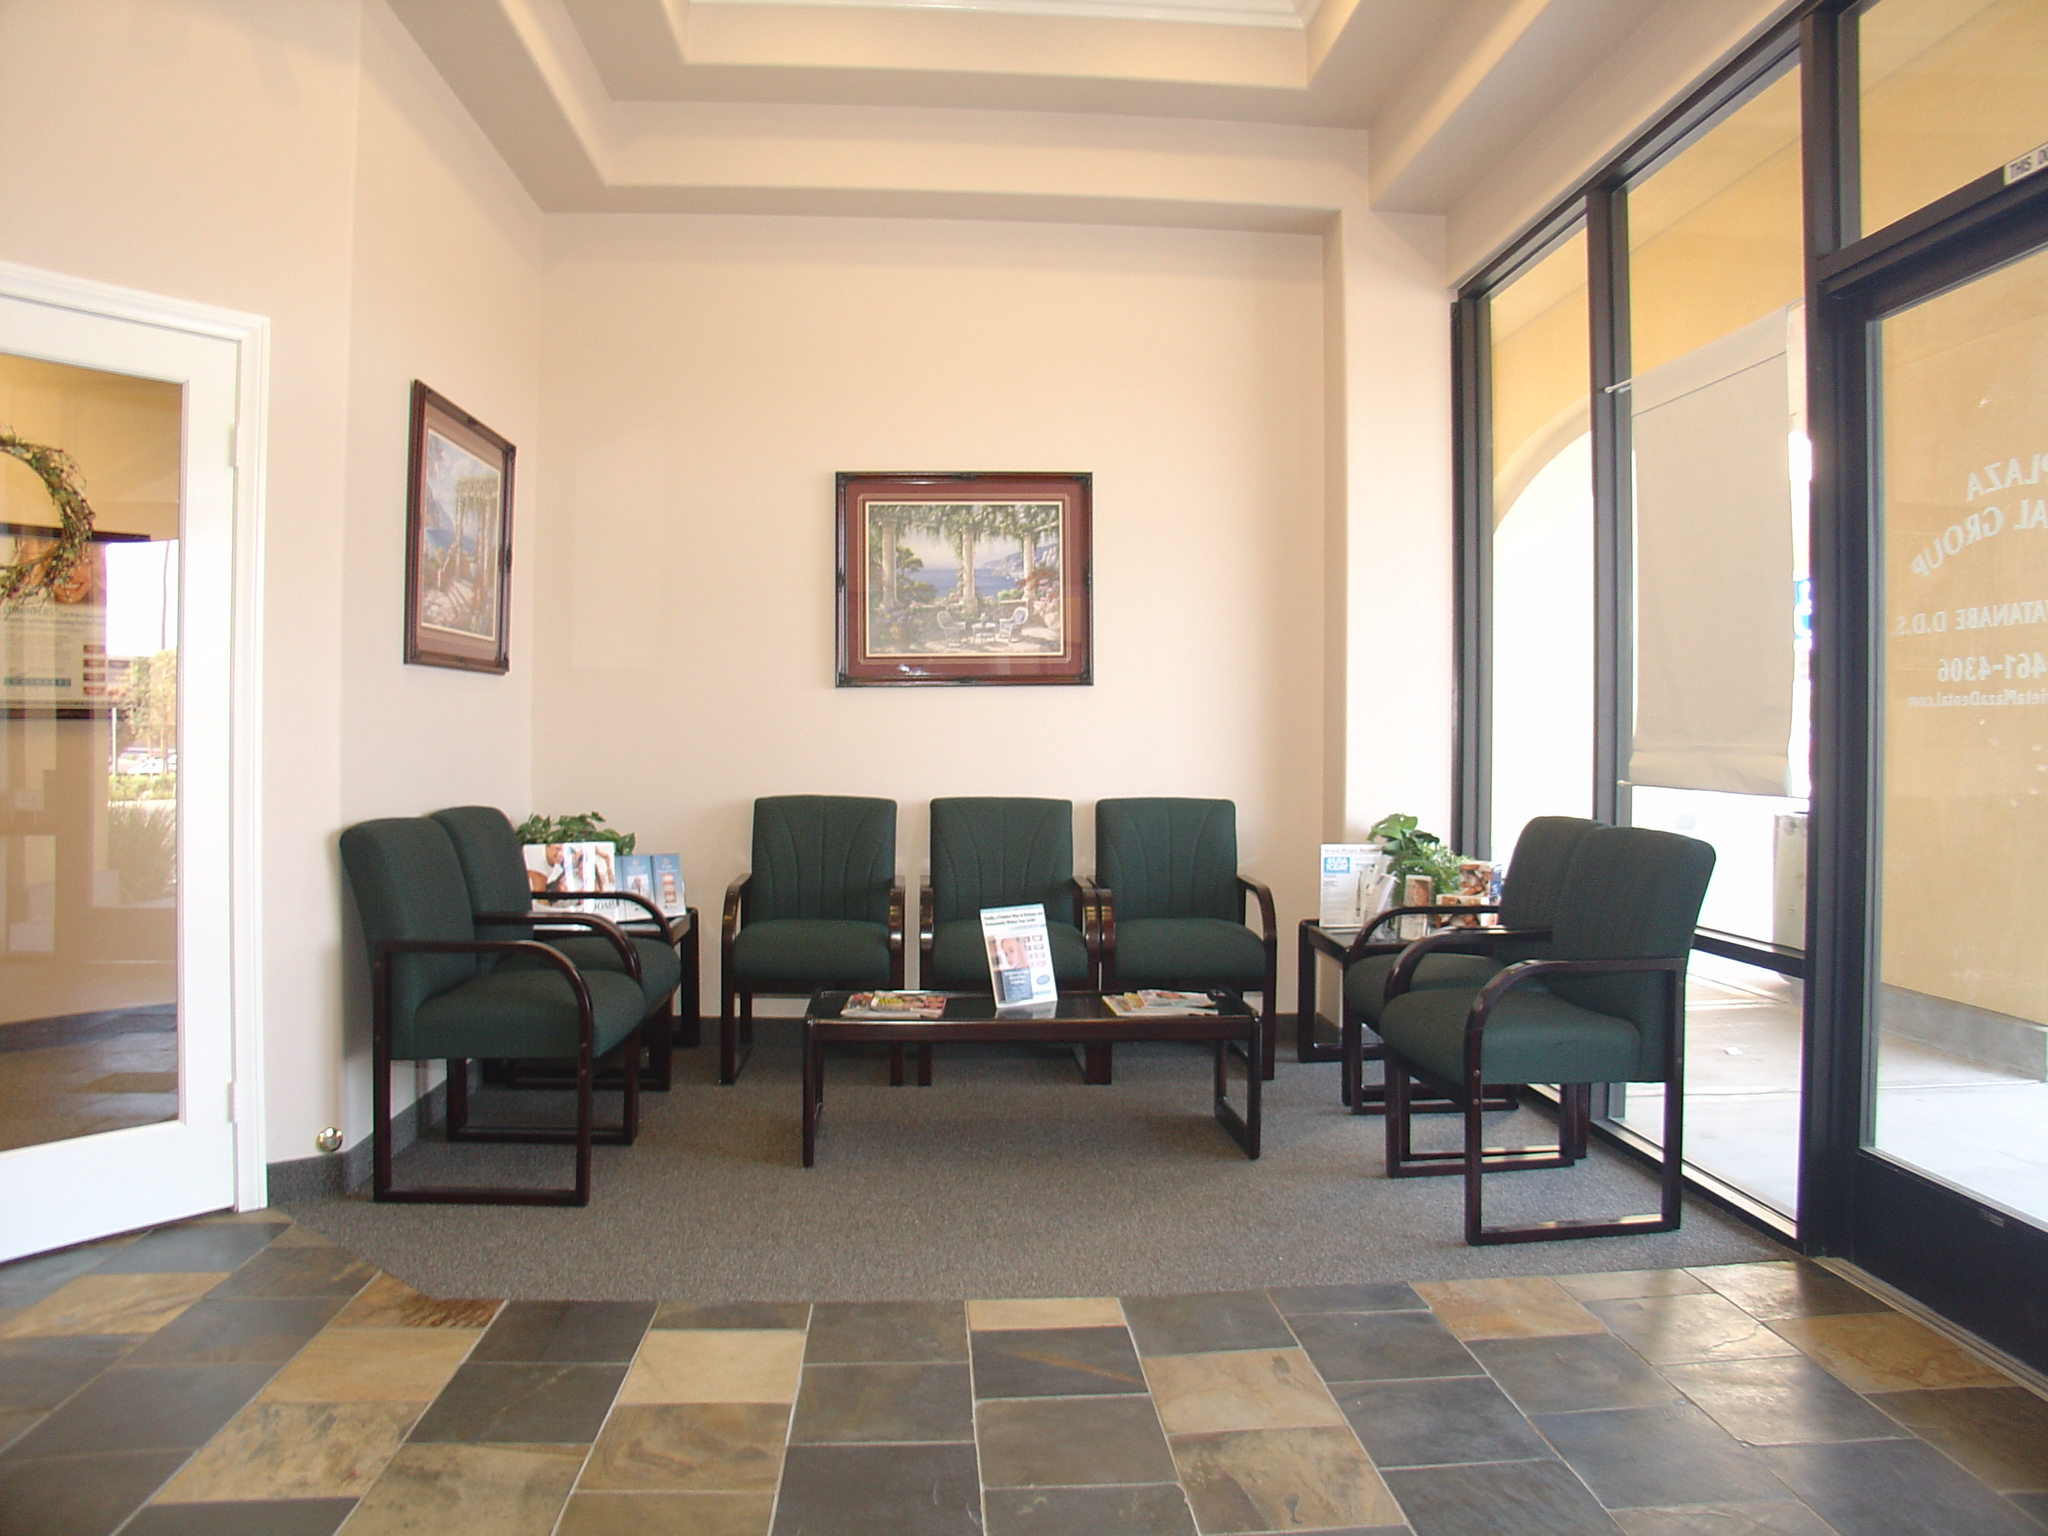 Plaza Dental Group image 4